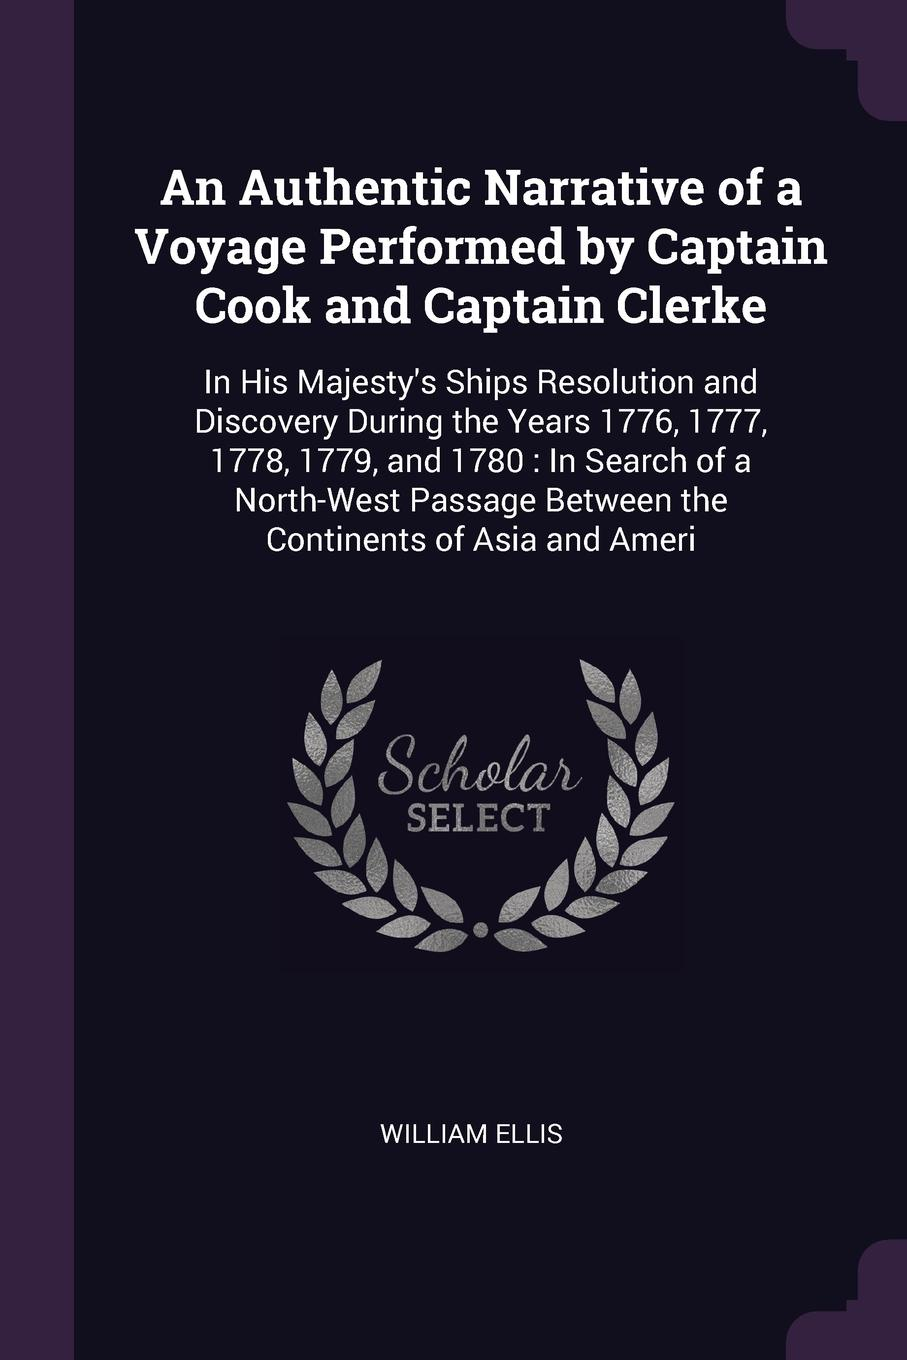 An Authentic Narrative of a Voyage Performed by Captain Cook and Captain Clerke. In His Majesty`s Ships Resolution and Discovery During the Years 1776, 1777, 1778, 1779, and 1780 : In Search of a North-West Passage Between the Continents of Asia a...